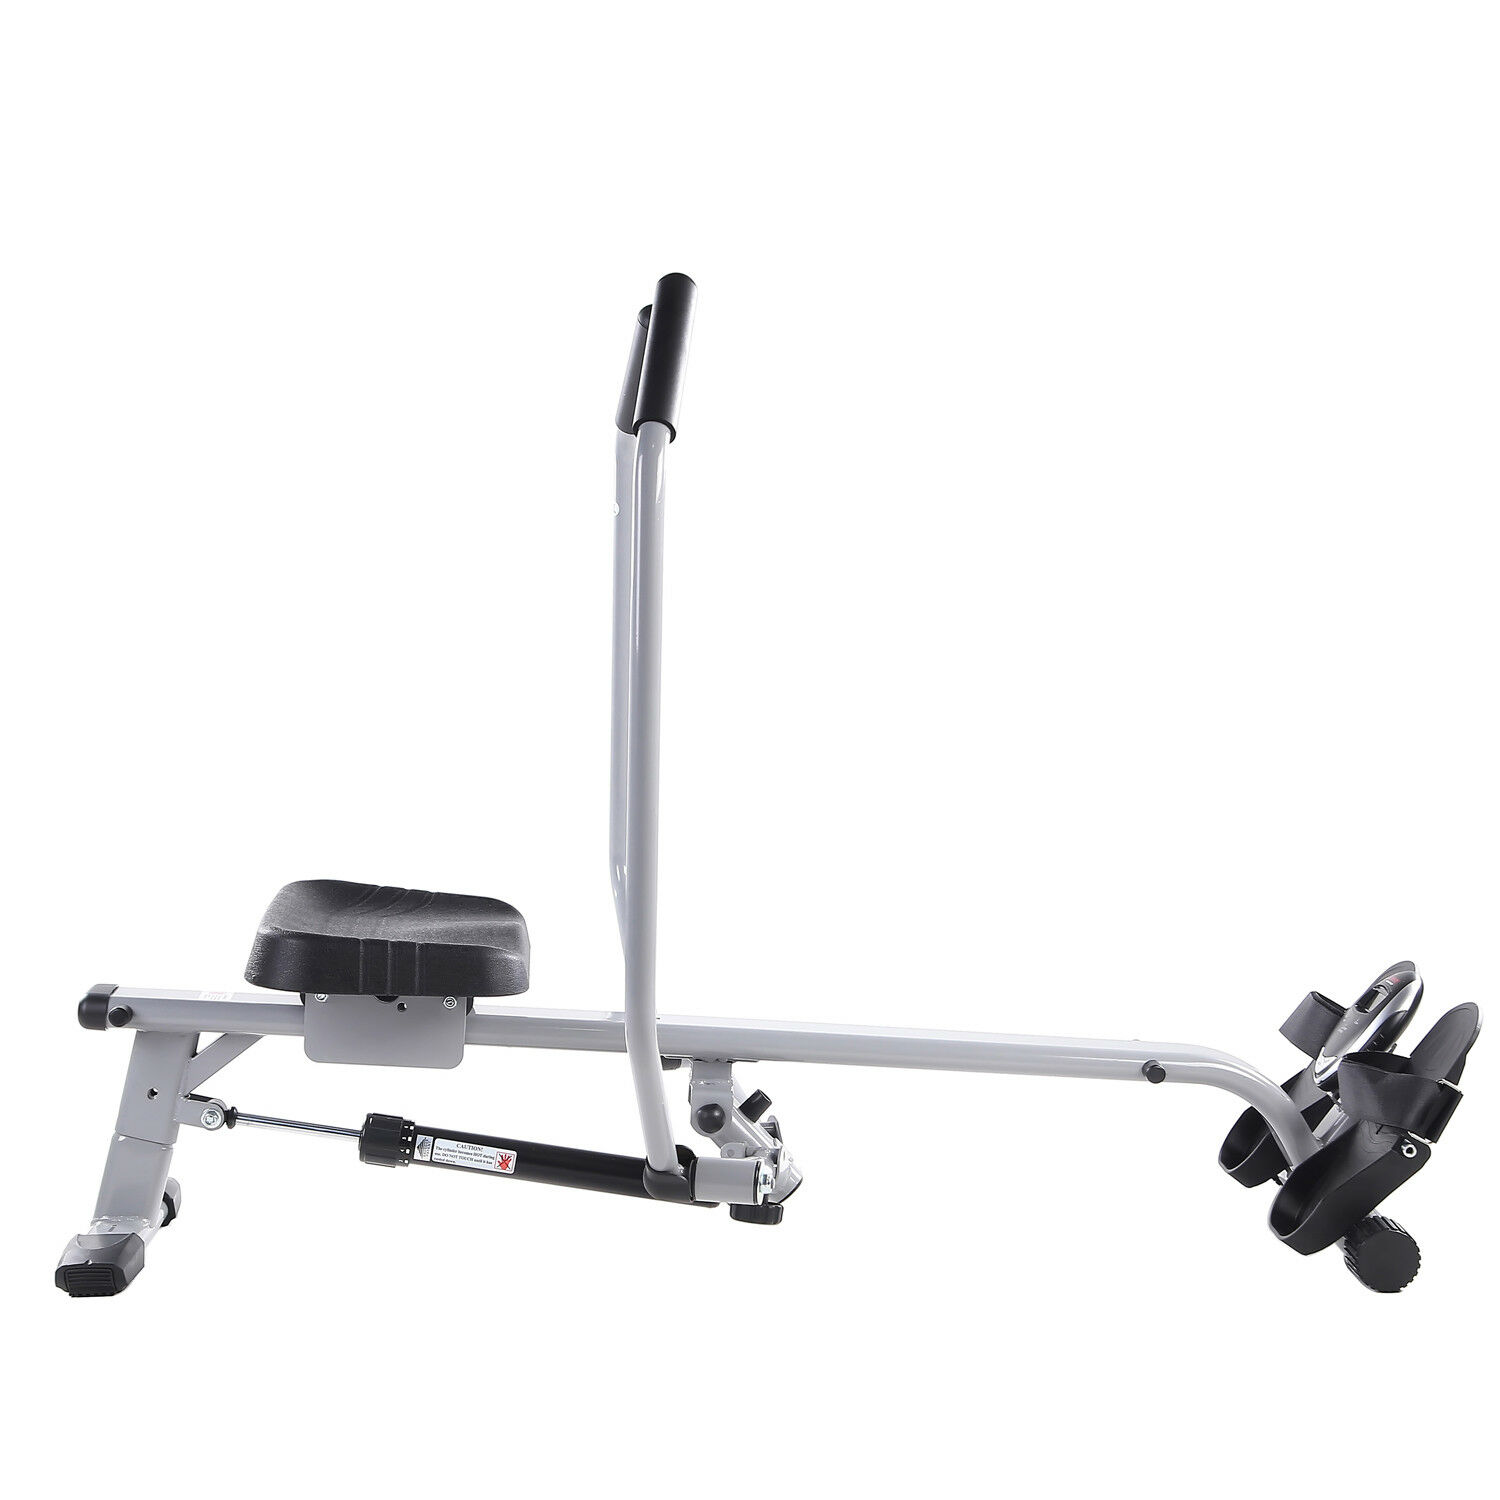 Sunny Health and Fitness Full Motion Rowing Machine Rower with 350lb Capacity an 5